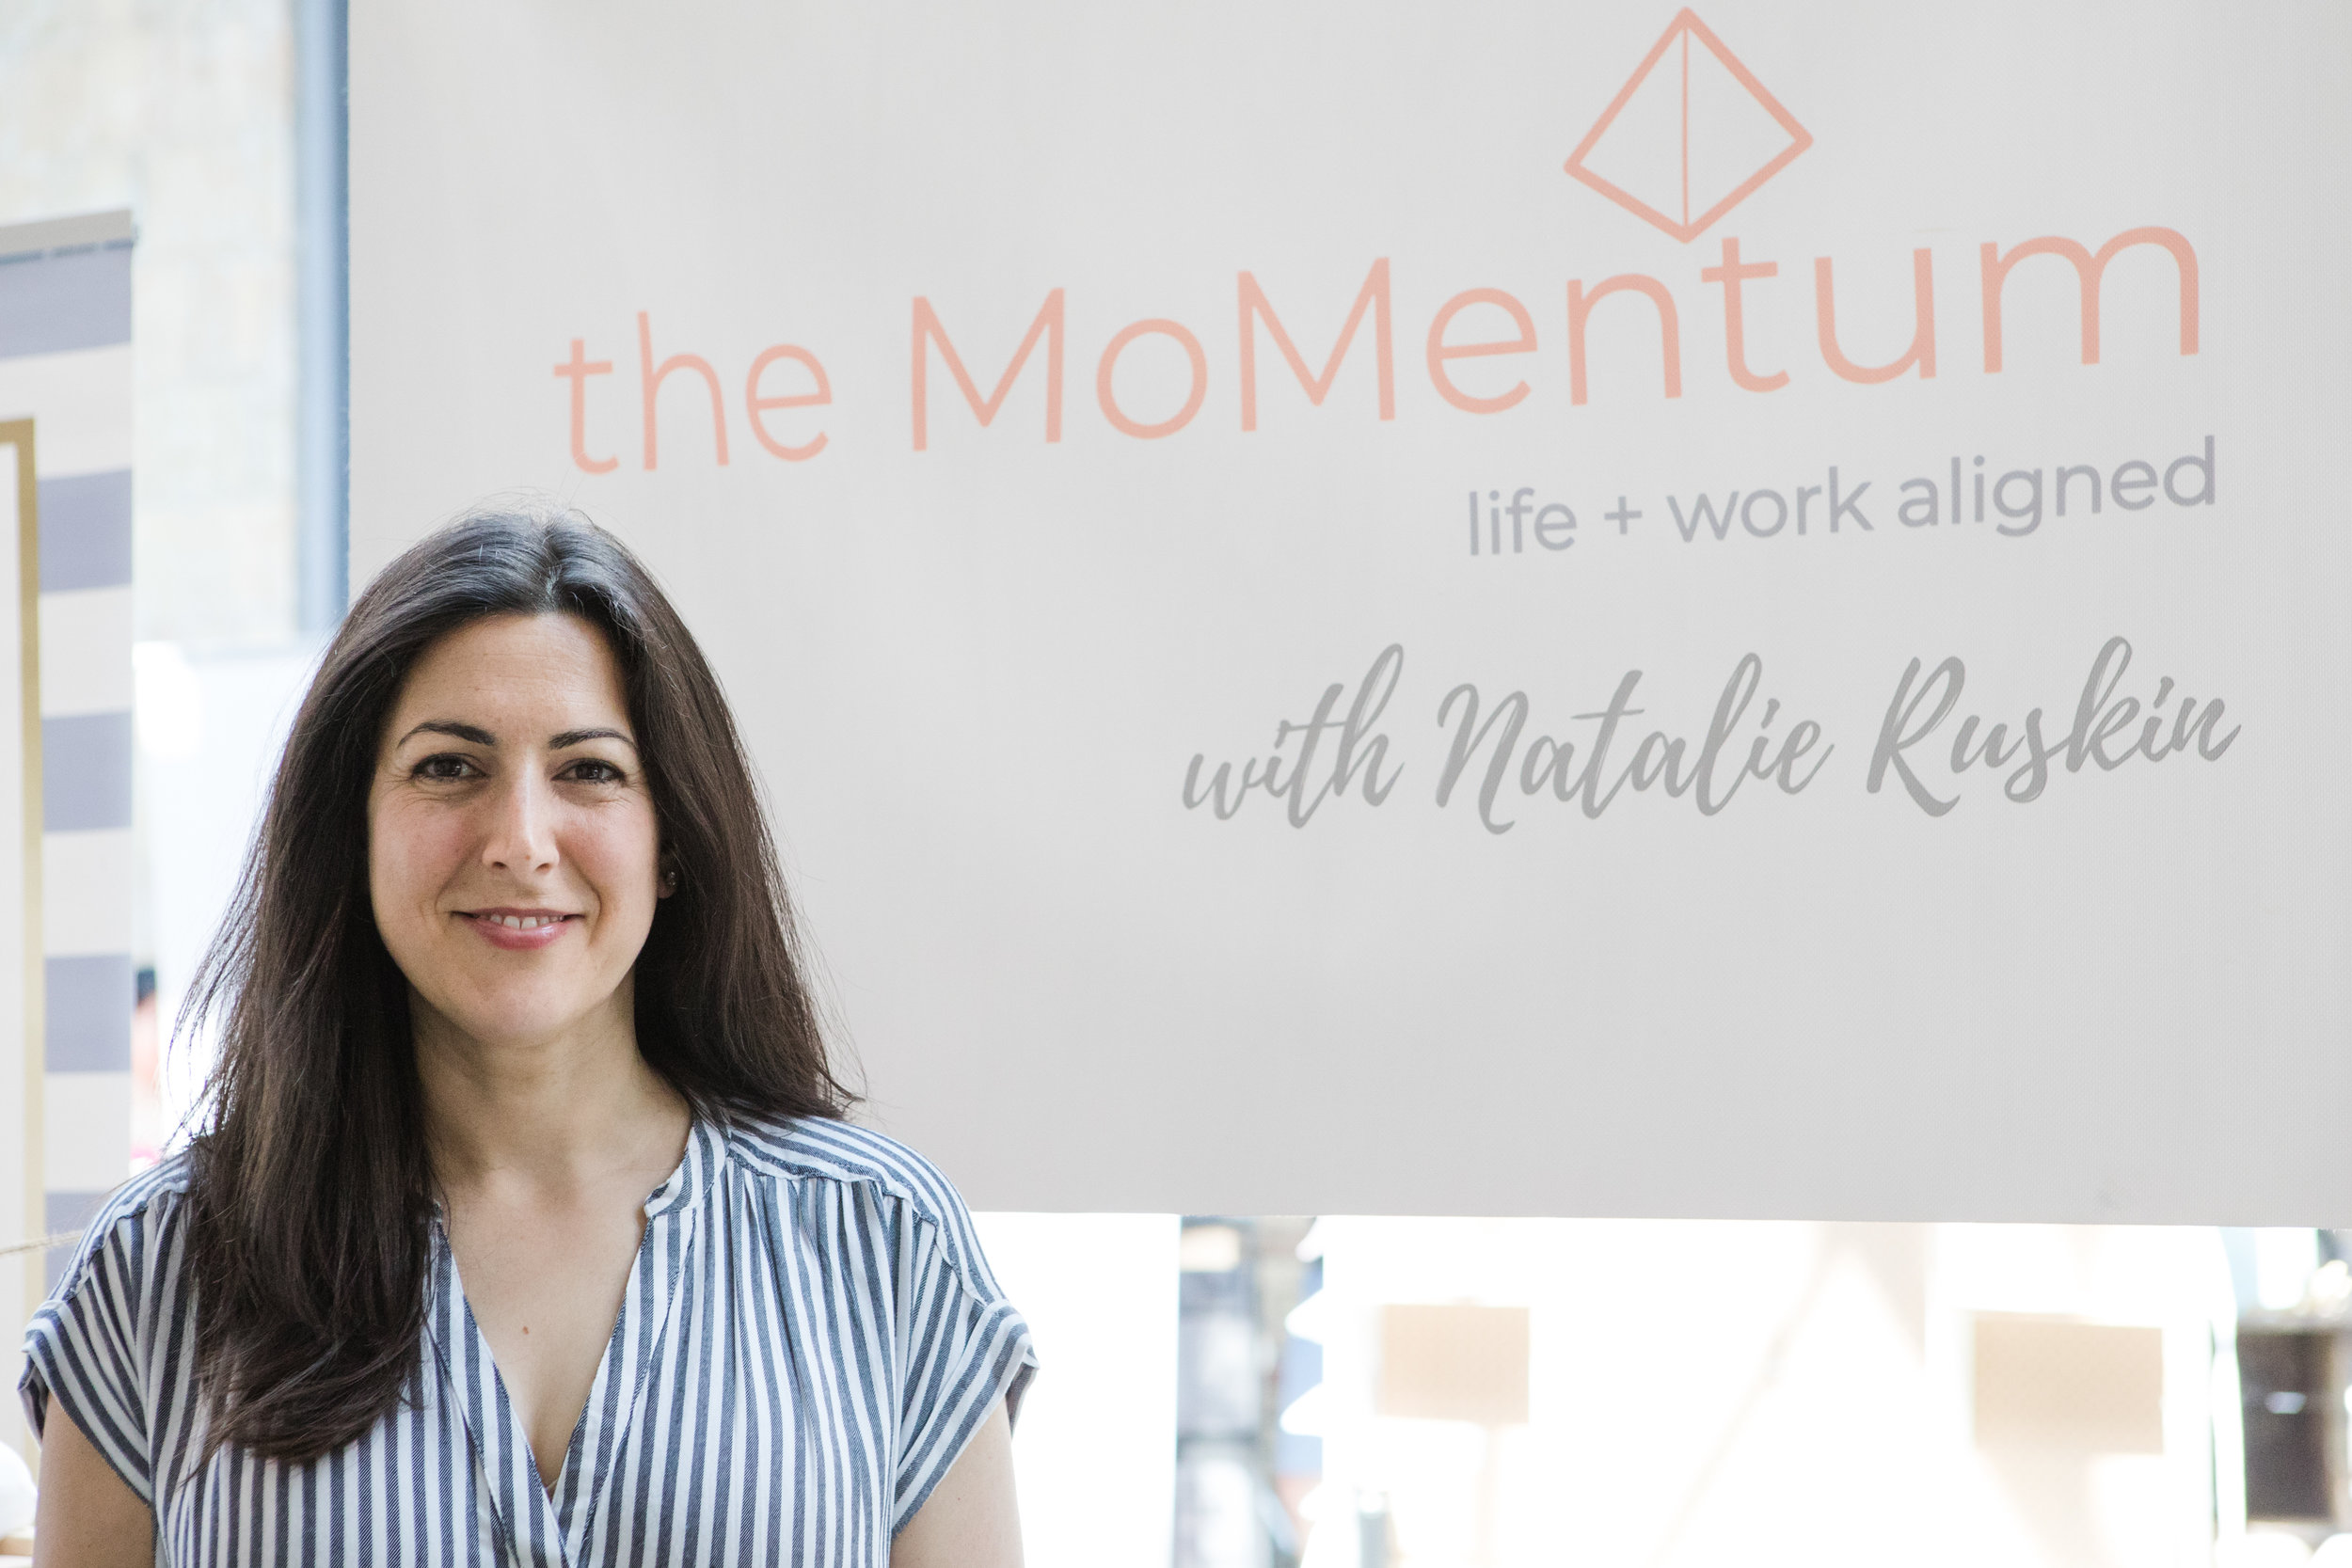 If you want a successful and sustainable work + life... - The MoMentum Coaching Program is ready for you.